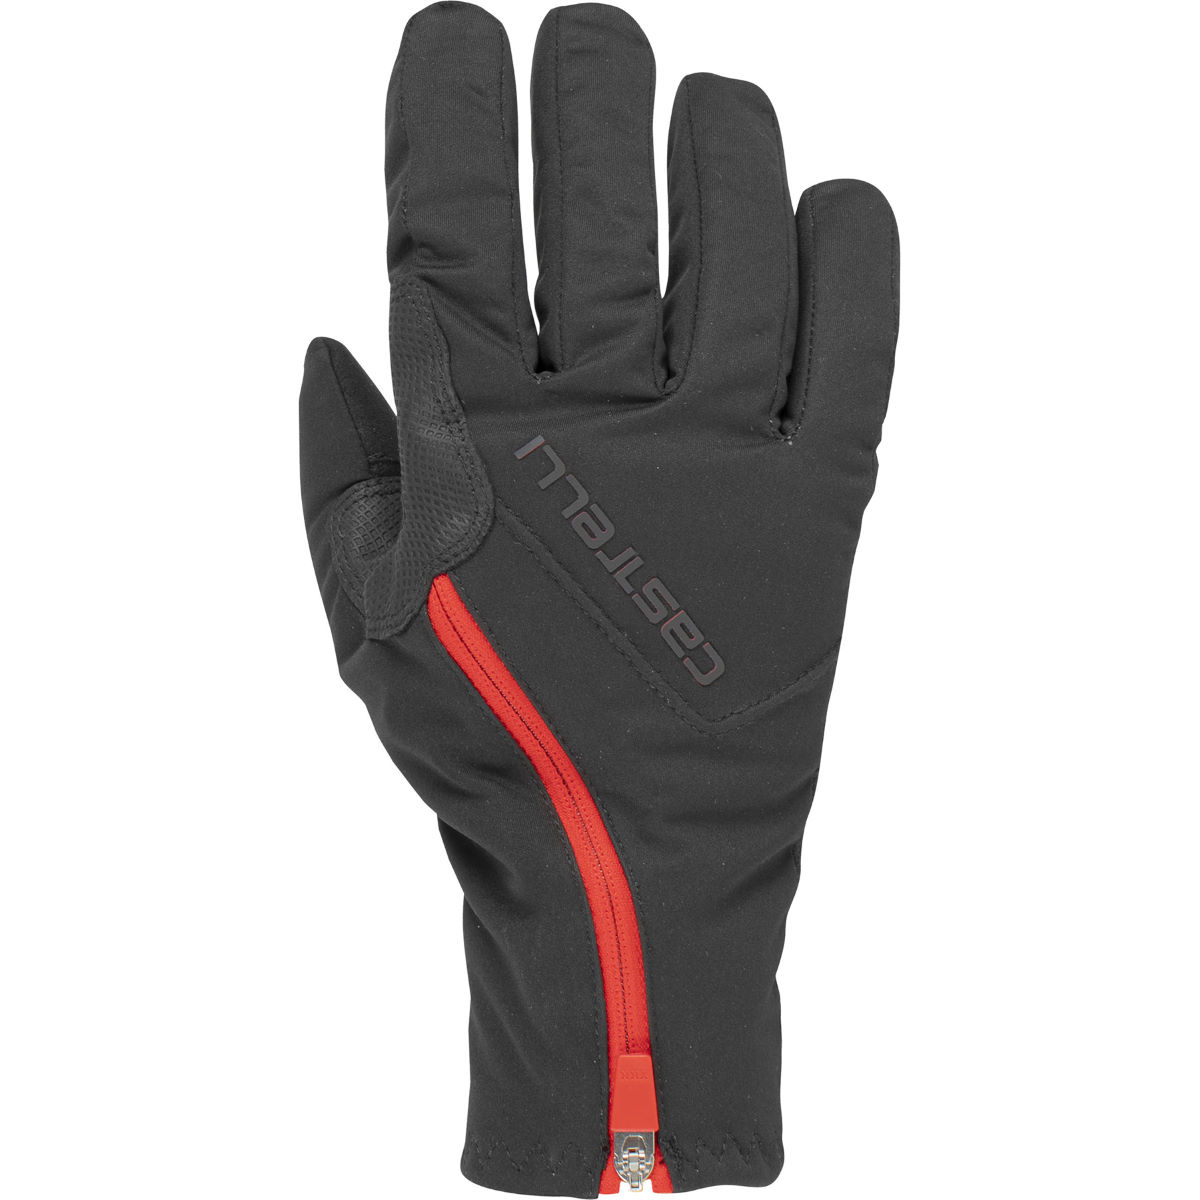 Castelli Women's Spettacolo ROS Gloves - Guantes